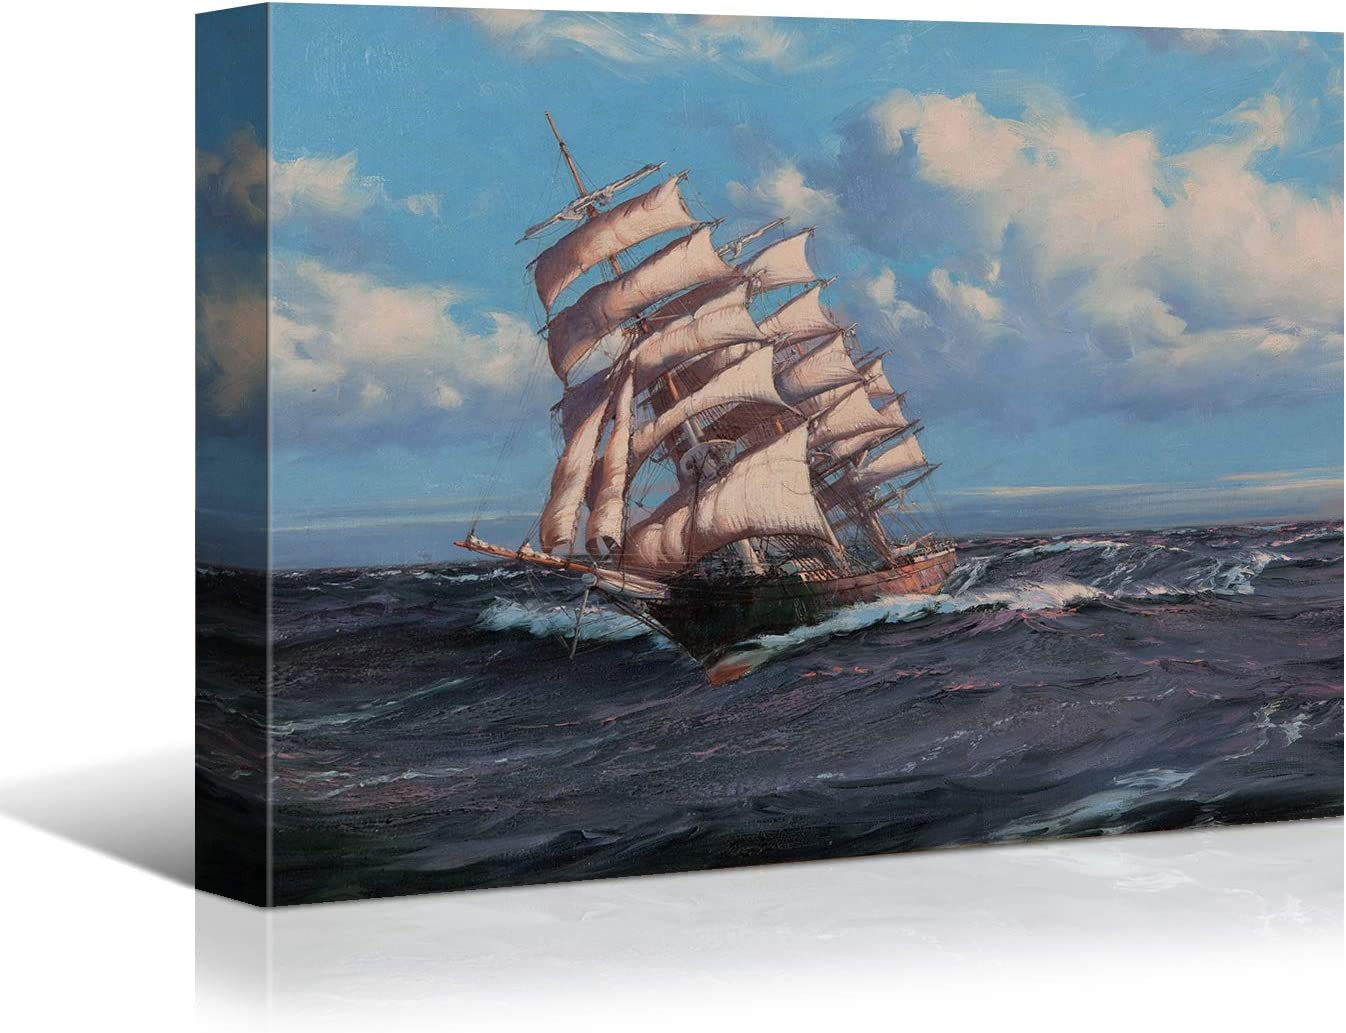 Looife Ocean Theme Canvas Wall Art, 40x30 Inch Sailboats on Blue Stormy Sea Picture Prints Wall Decor, Sailing Ship Painting Deco for Living Room, Bedroom, Bathroom and Hotel, Ready to Hang